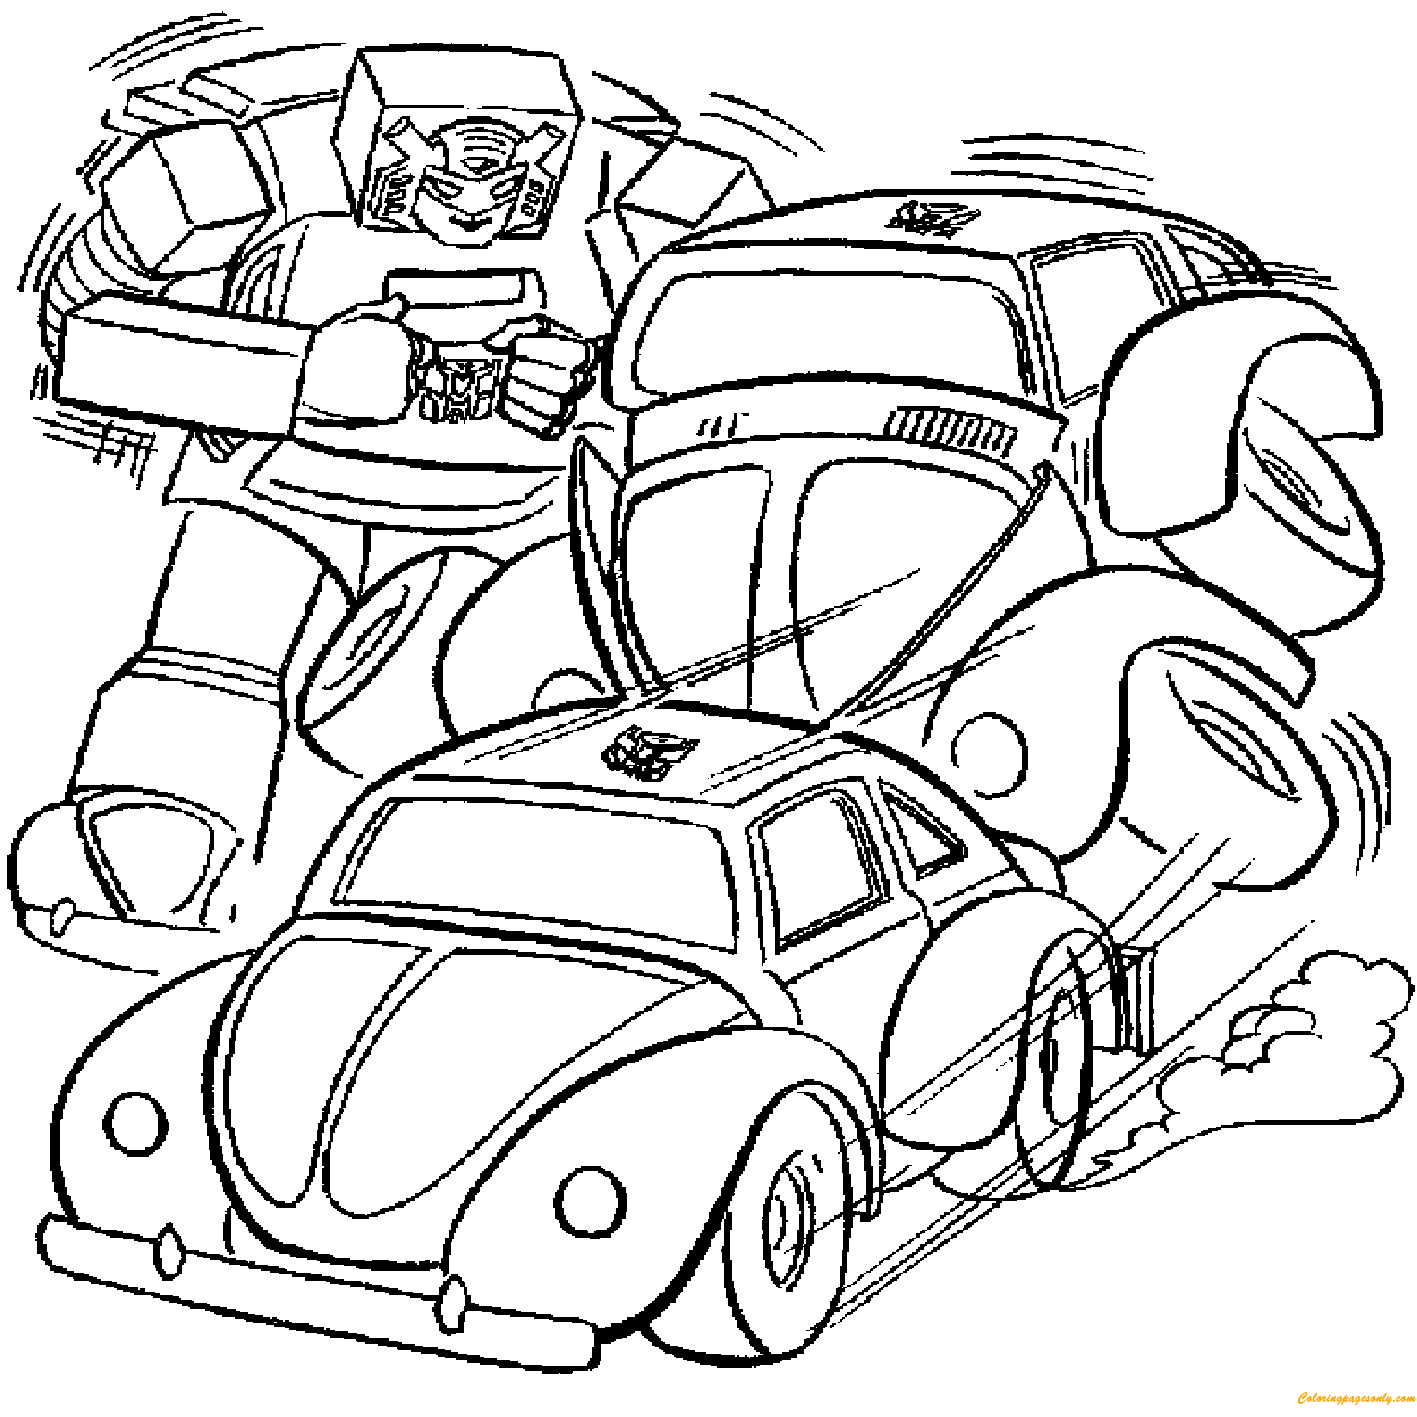 Transformers Breaking Cars Coloring Pages